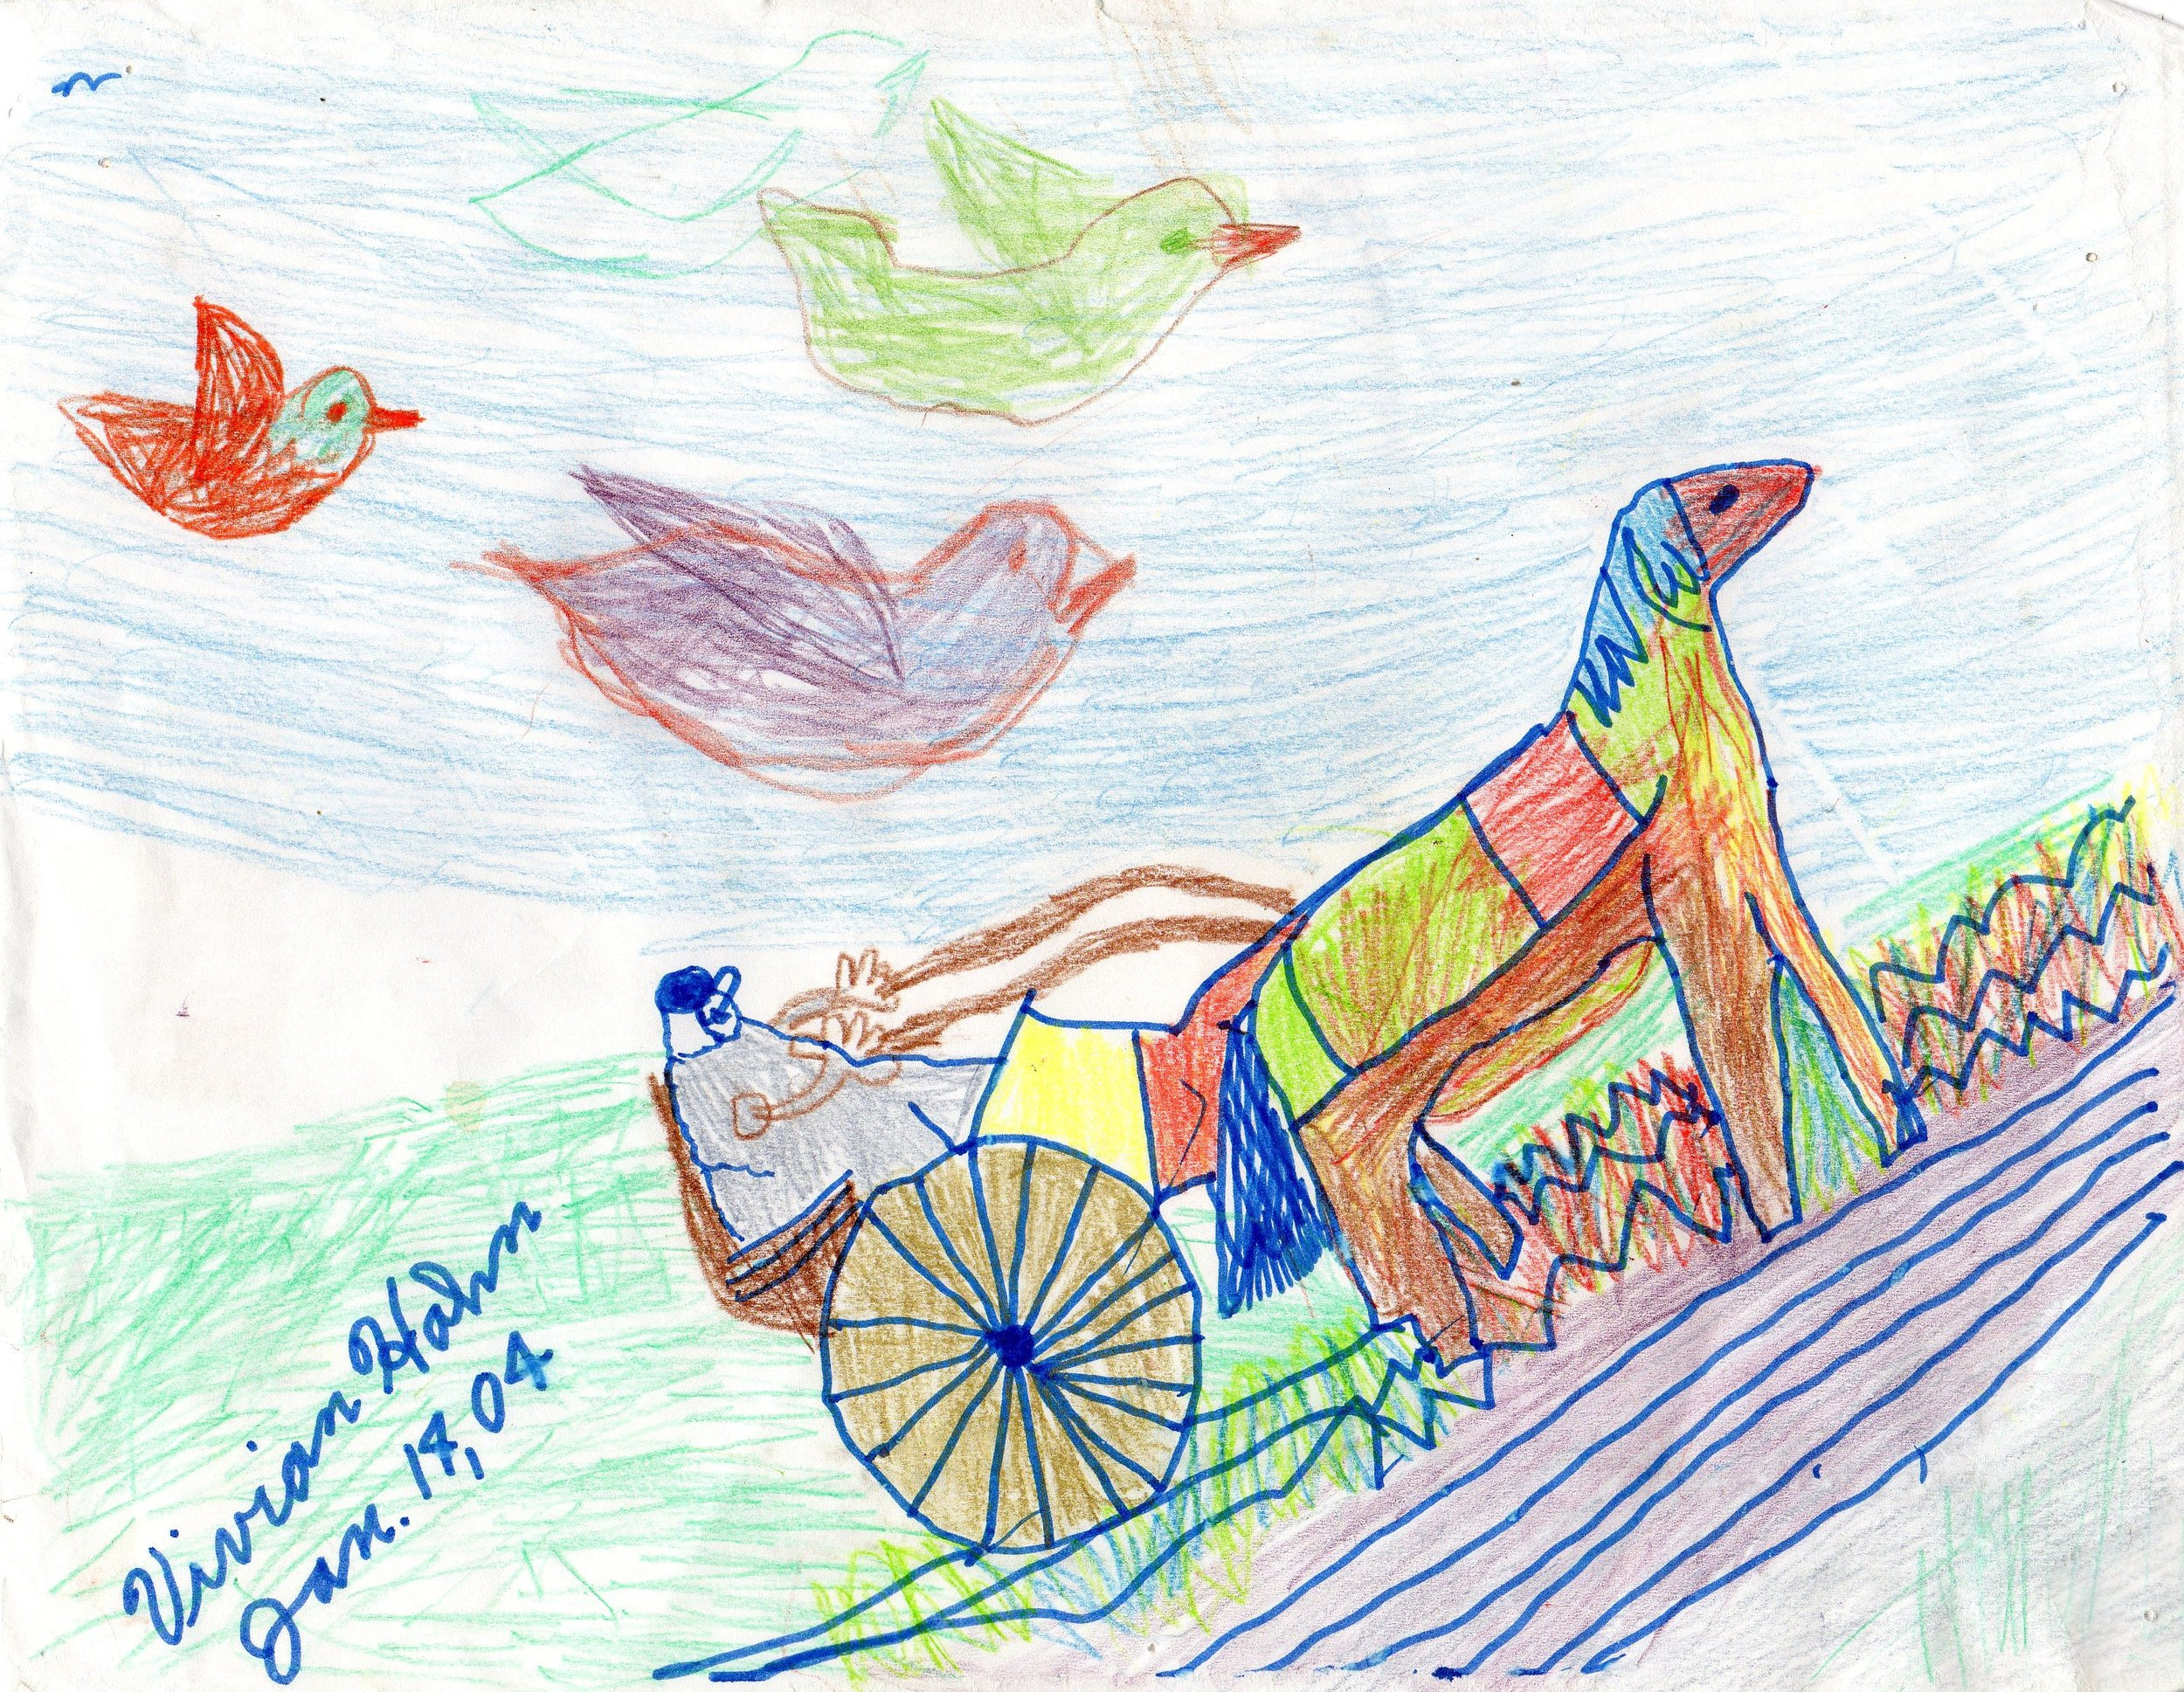 Horse pulling a Cart Vivian Hahn 1/4/2004 Color Pencil on Paper Prints $20, originals $40